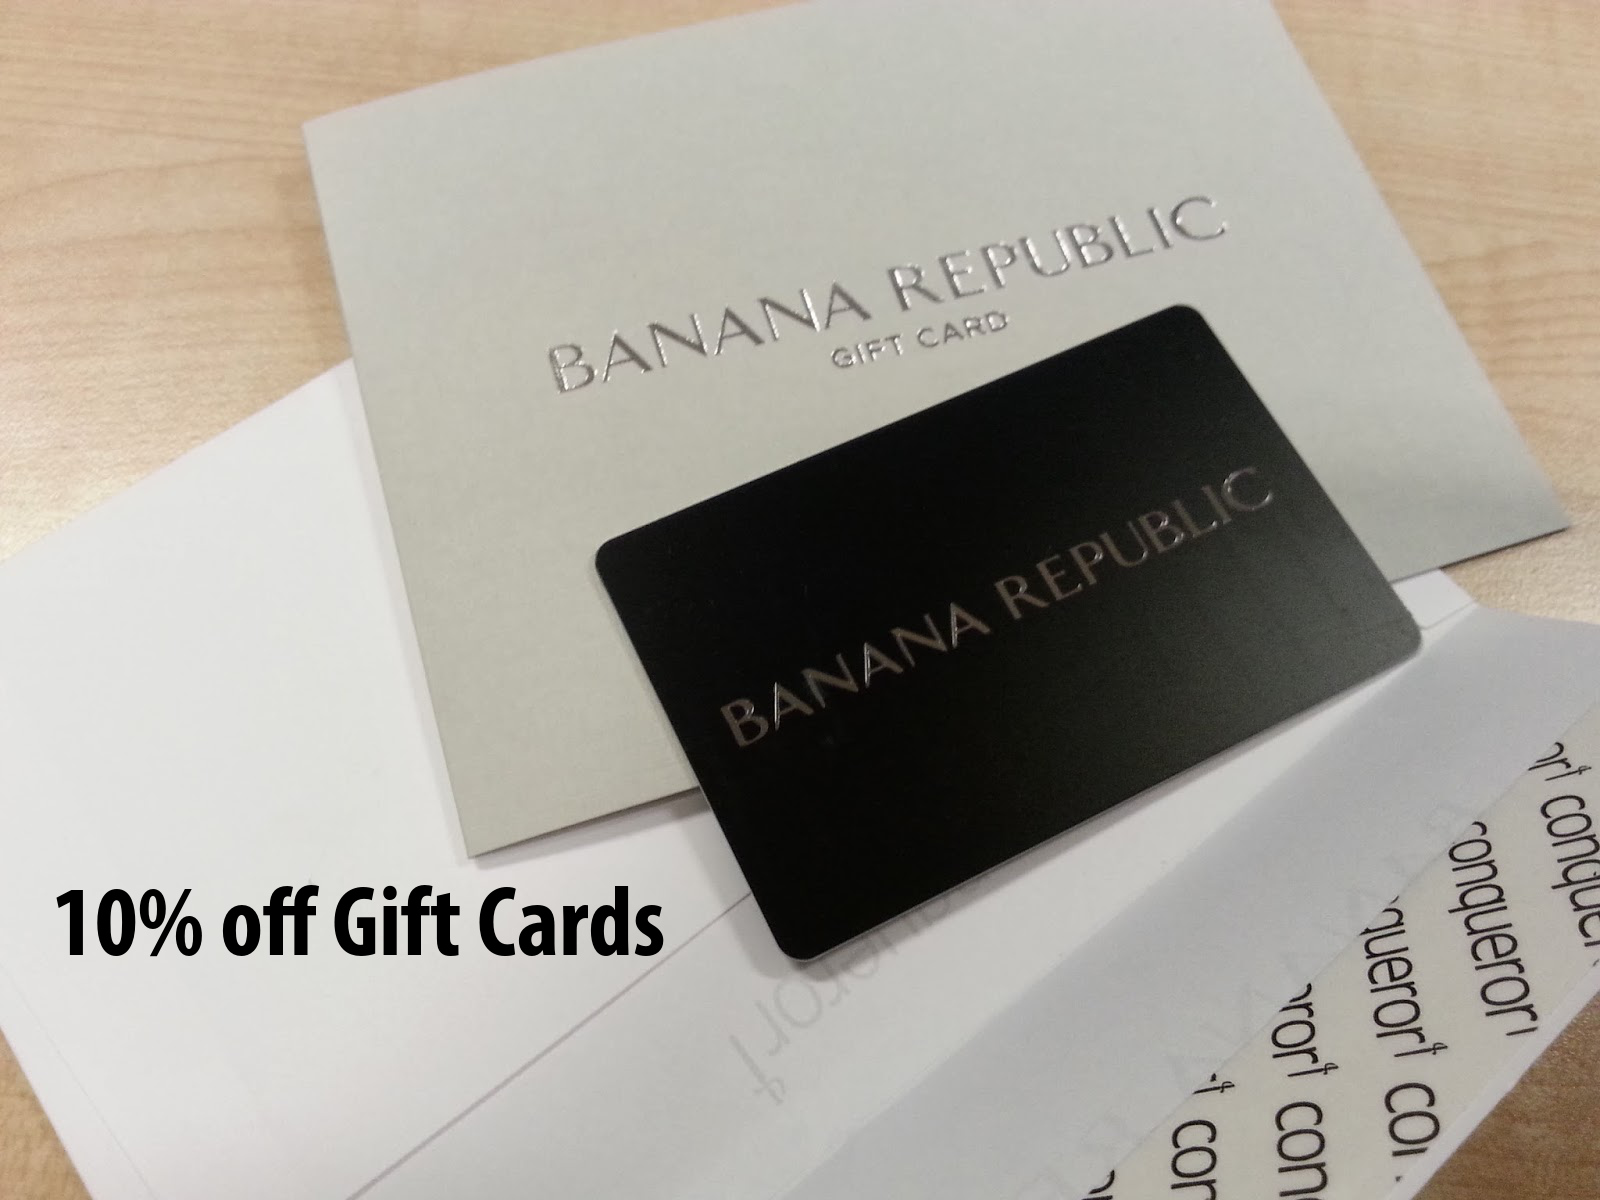 banana-republic-gift-card